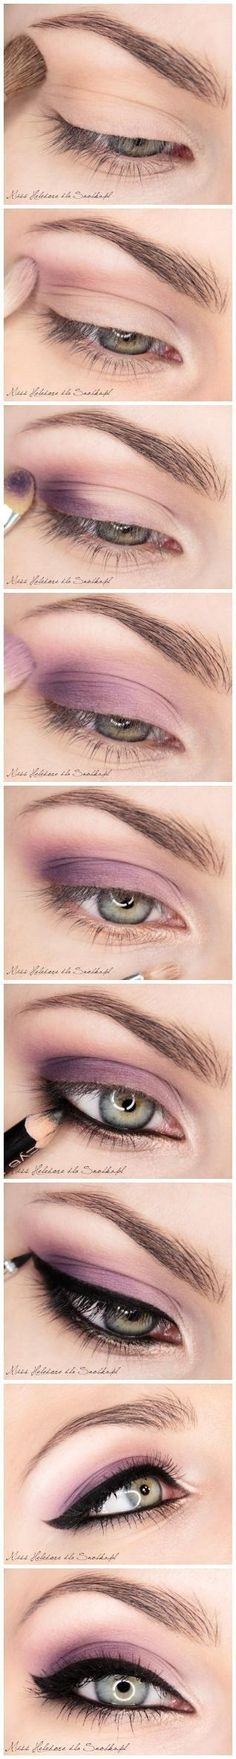 Makeup TIps: Beauty Tips: Eye Makeup: Beautiful eye makeup. Nice and easy to follow steps.